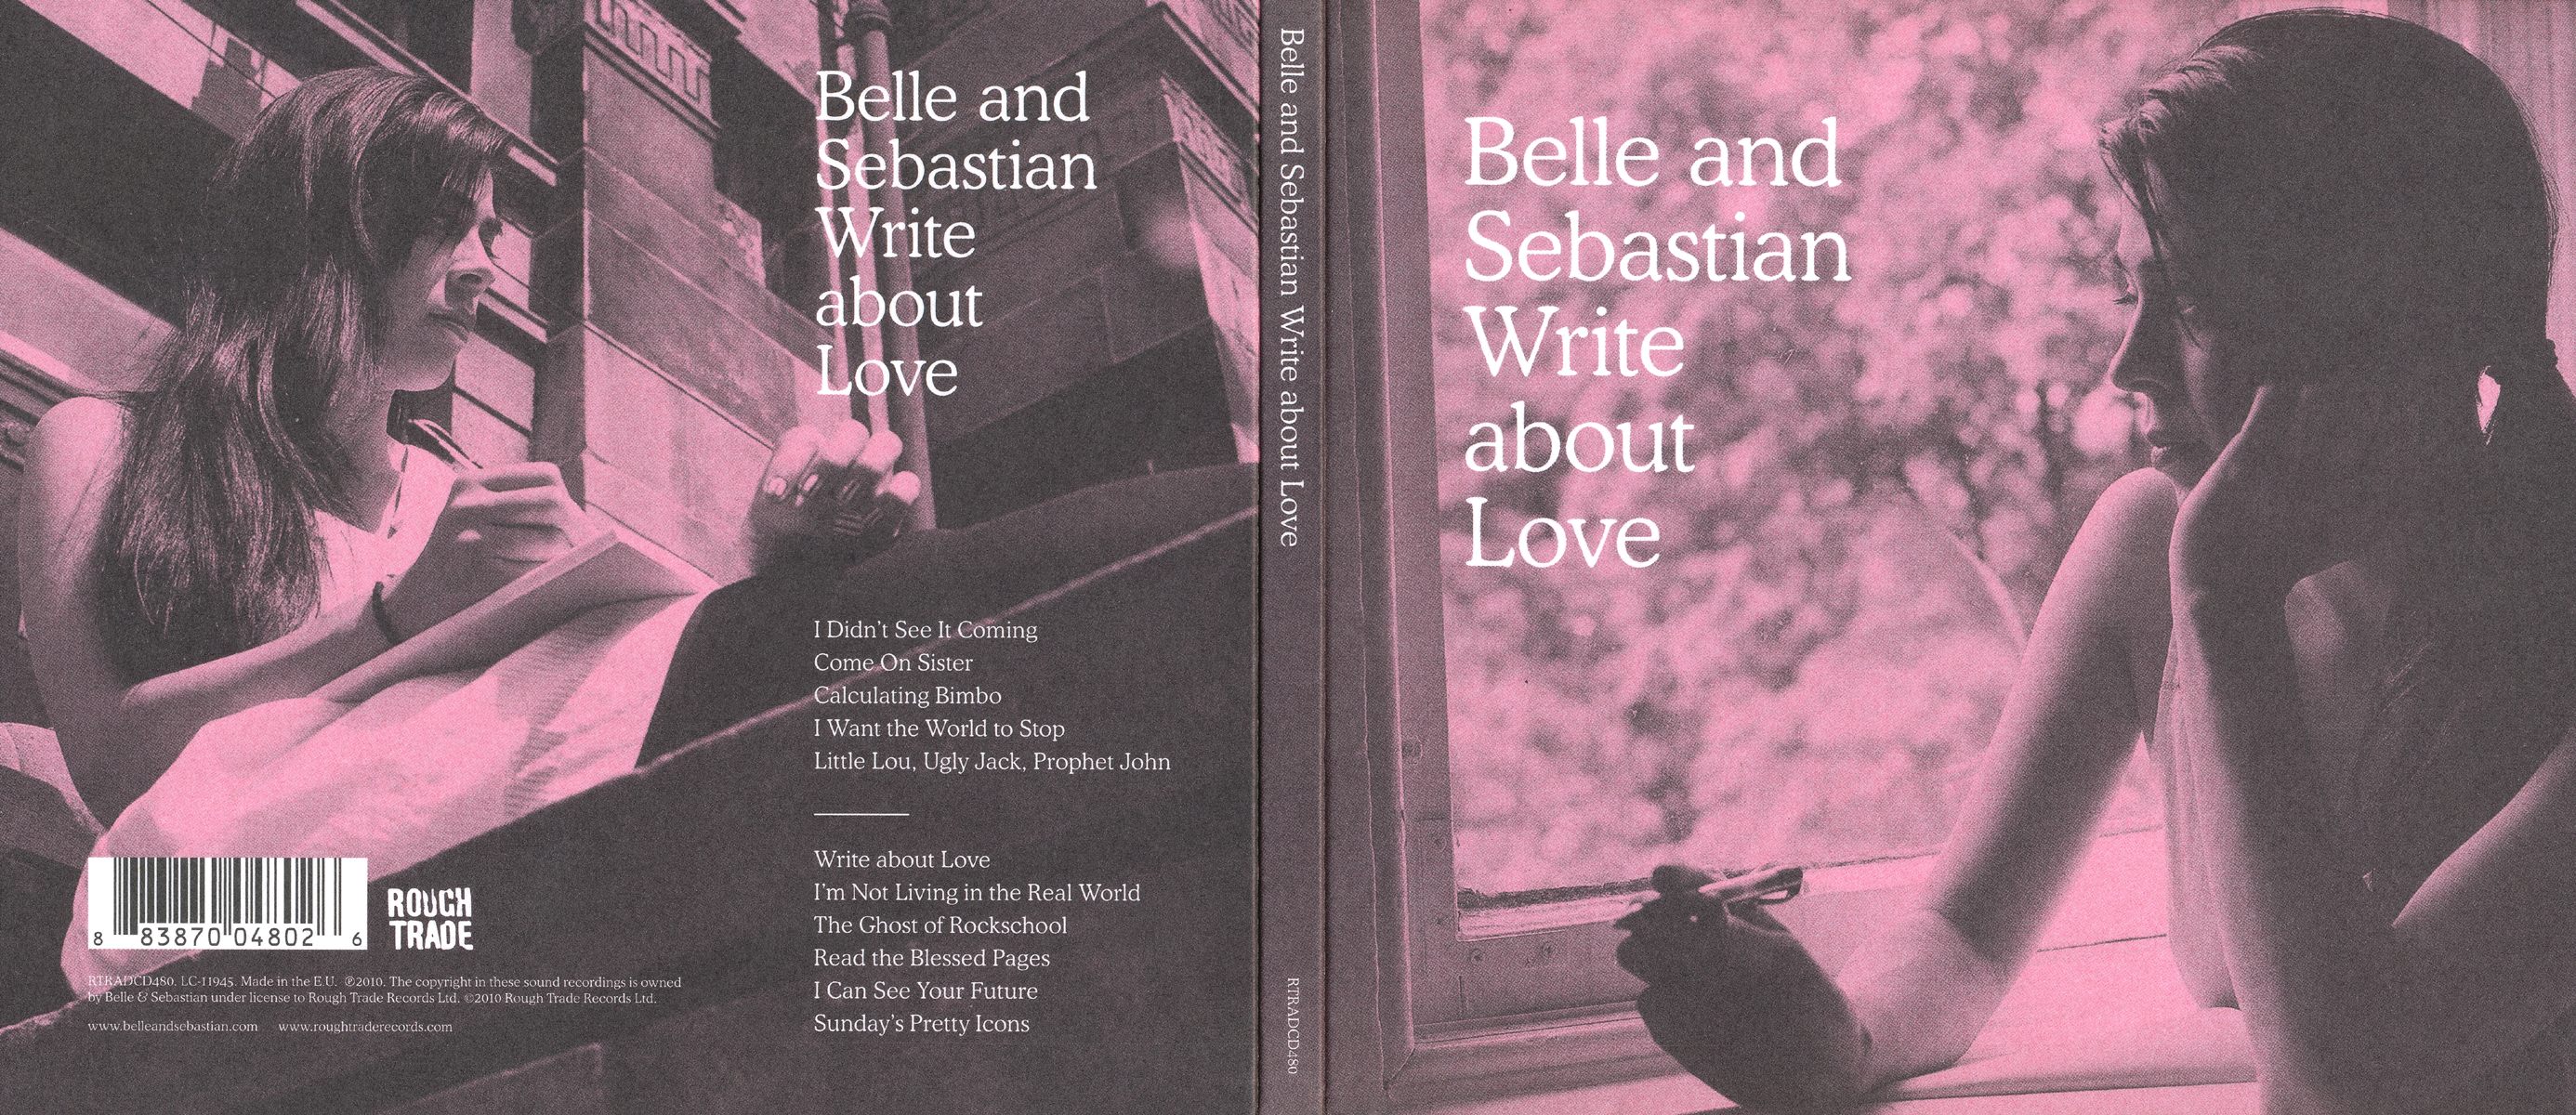 Download Belle and Sebastian's